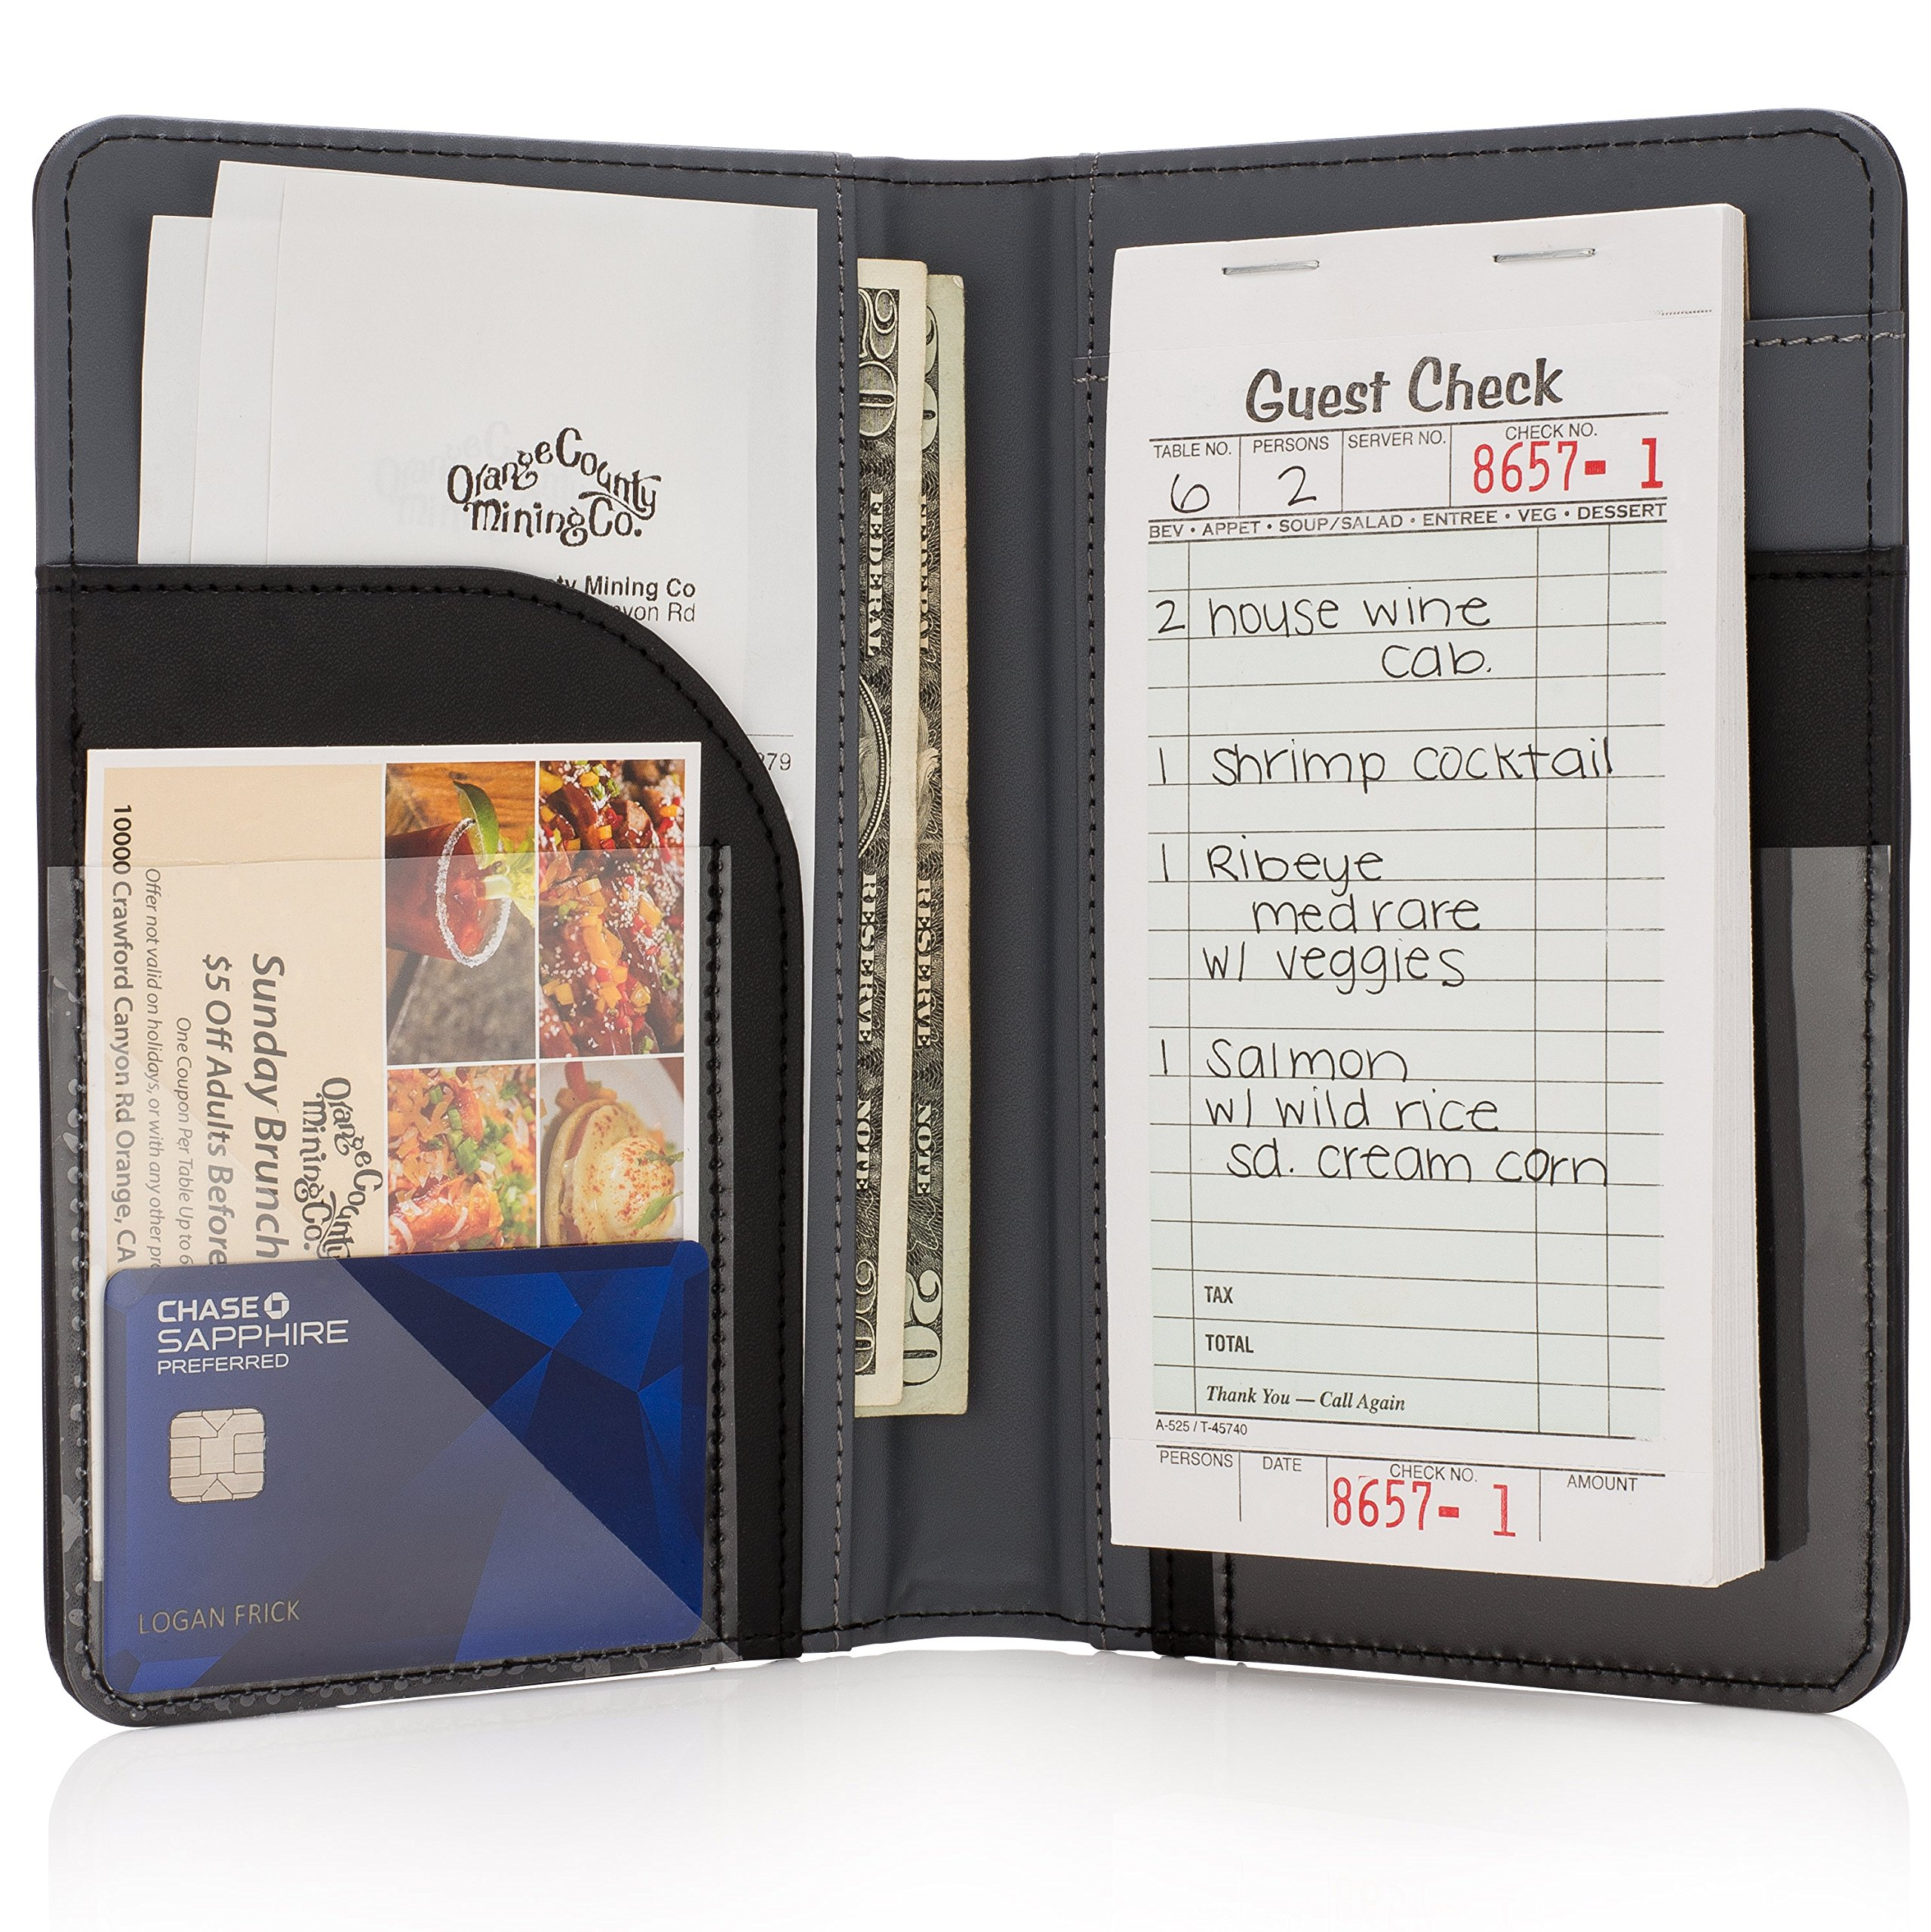 Premium Server Book & Waiter Book Organizer - Strongest & Thickest - Holds Guest Checks & Server Pads for Waiters